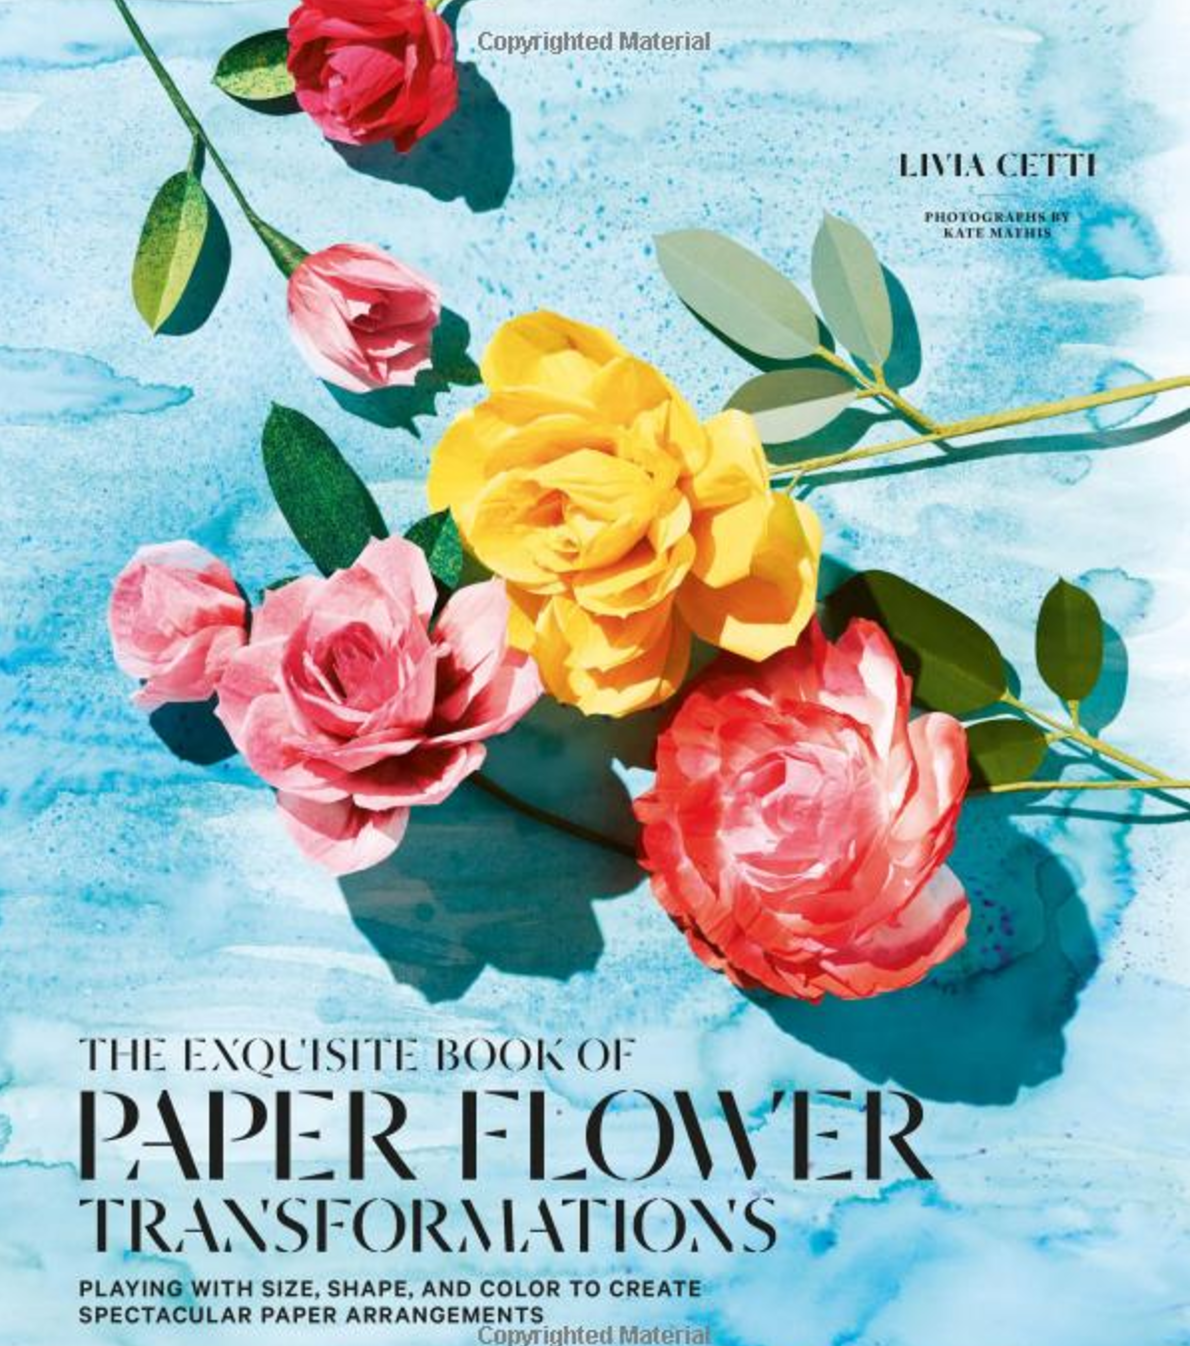 The Exquisite Book of Paper Flower Transformations